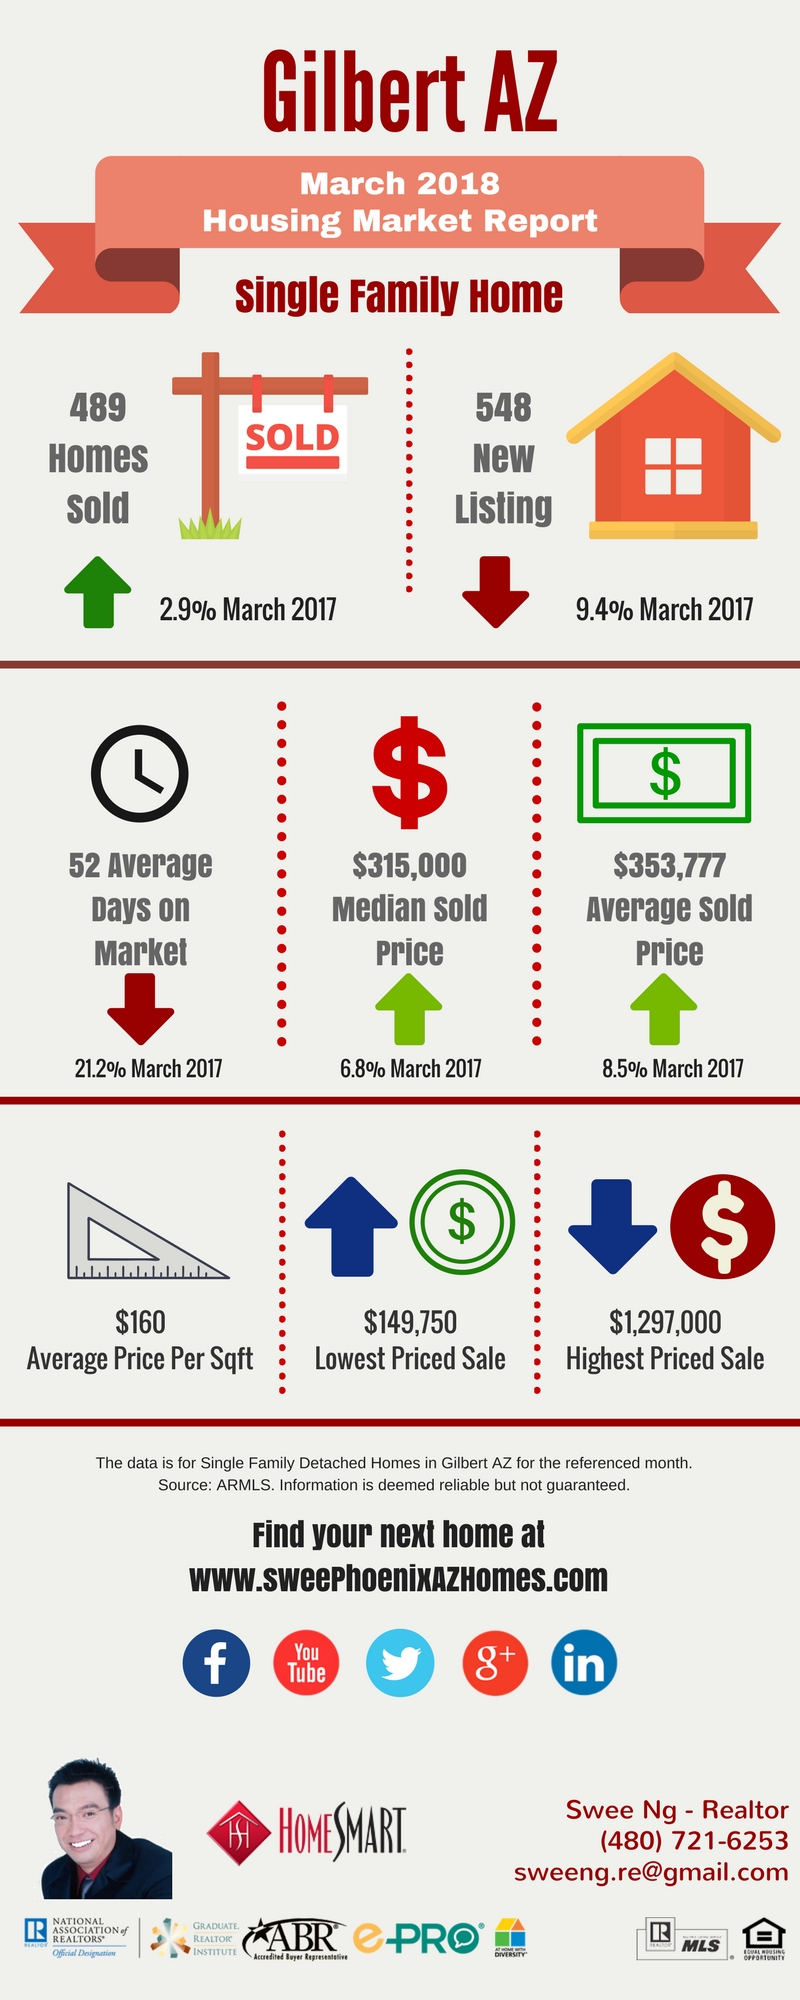 Gilbert AZ Housing Market Trends Report March 2018 by Swee Ng, Real Estate and House Value